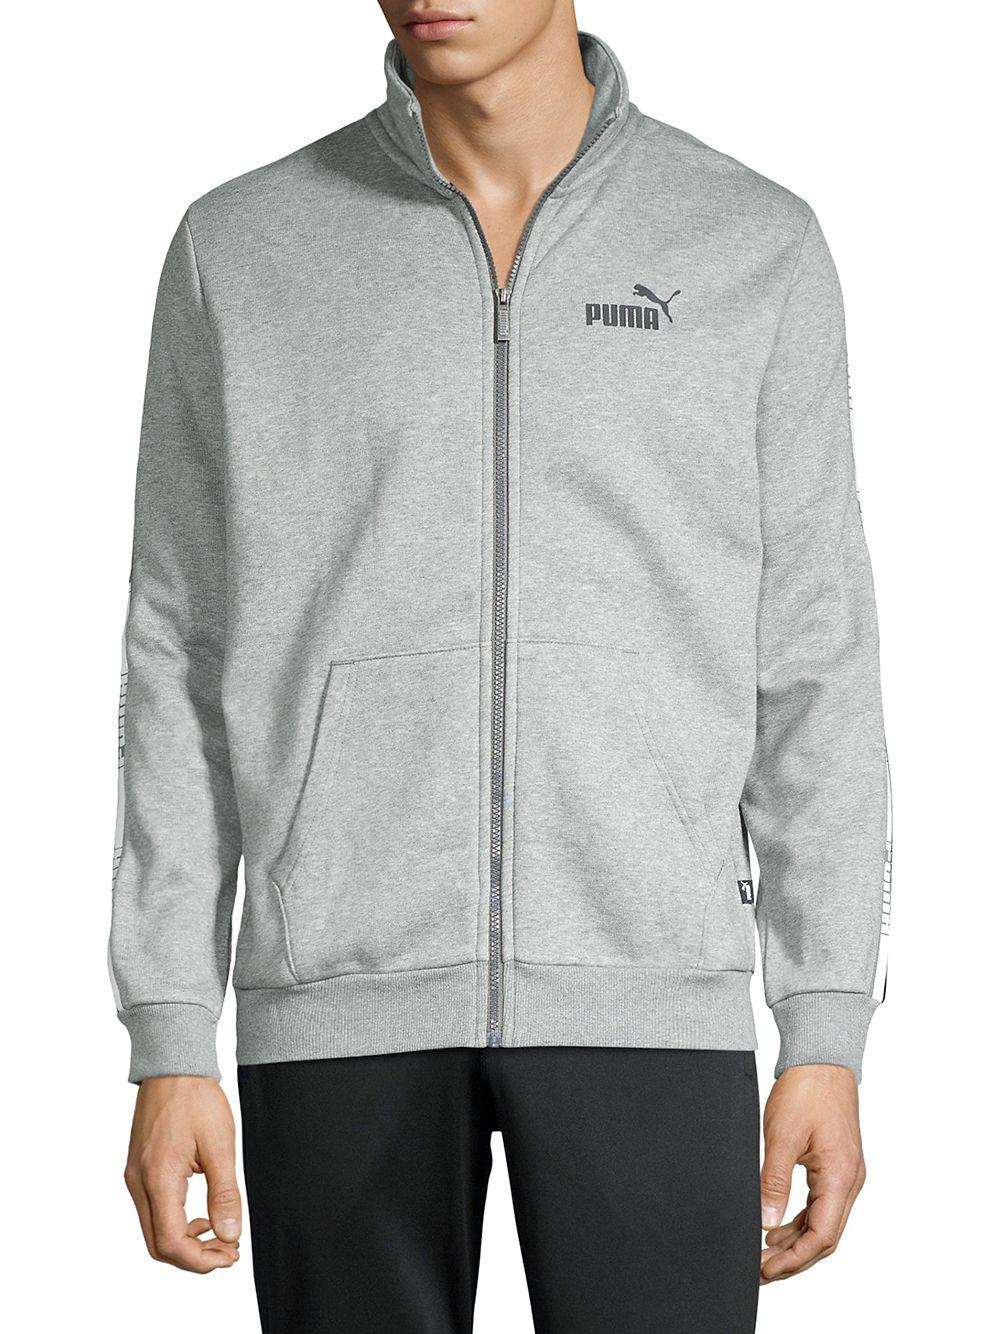 c1c5613f1bd3 Lyst - Puma Side-tape Track Jacket in Gray for Men